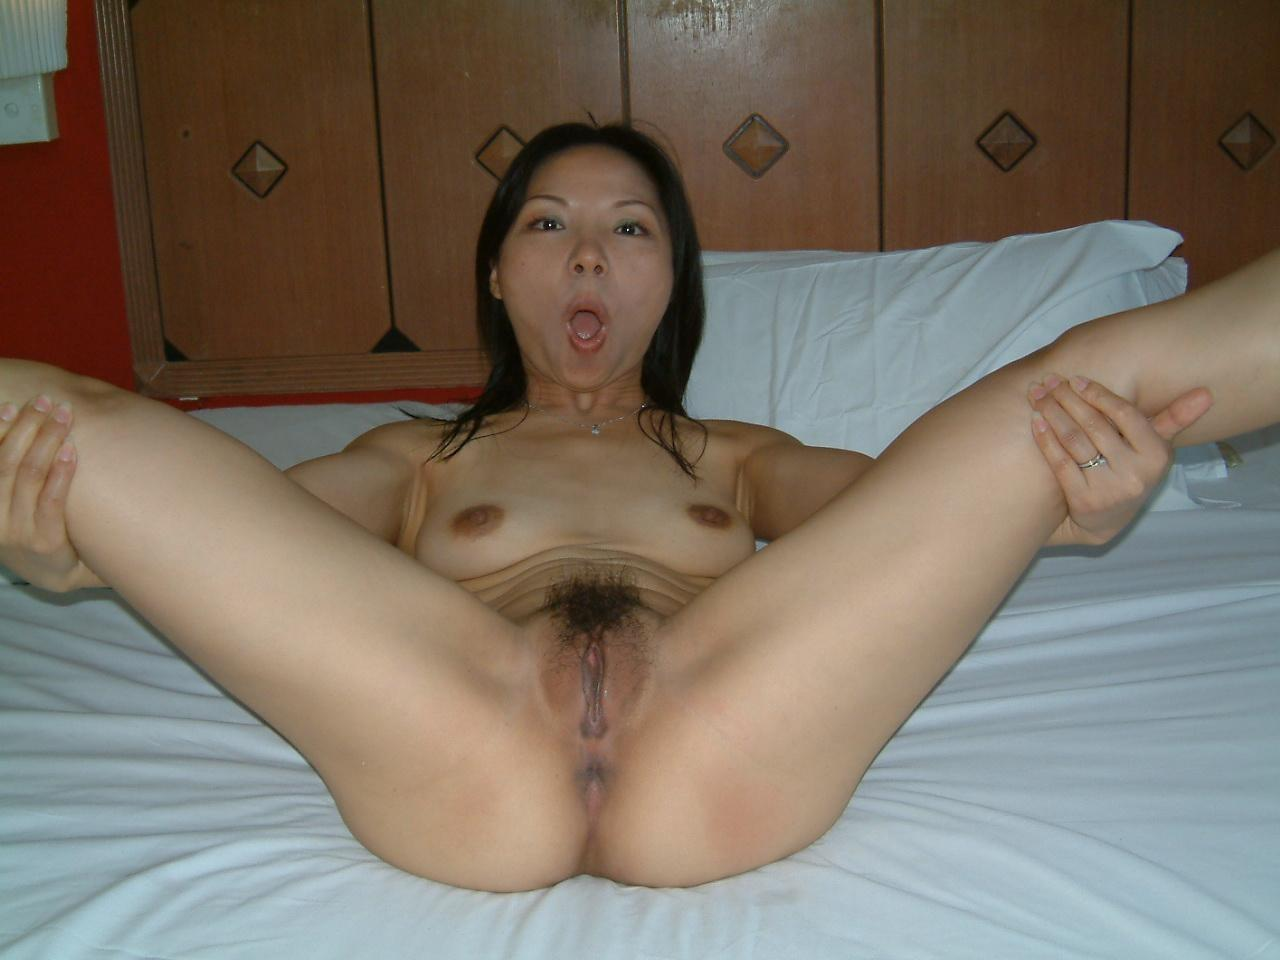 Wacky Amateur Nude Woman | GutterUncensored.com: denisecross12.blogspot.com/2011/06/wacky-amateur-nude-woman.html